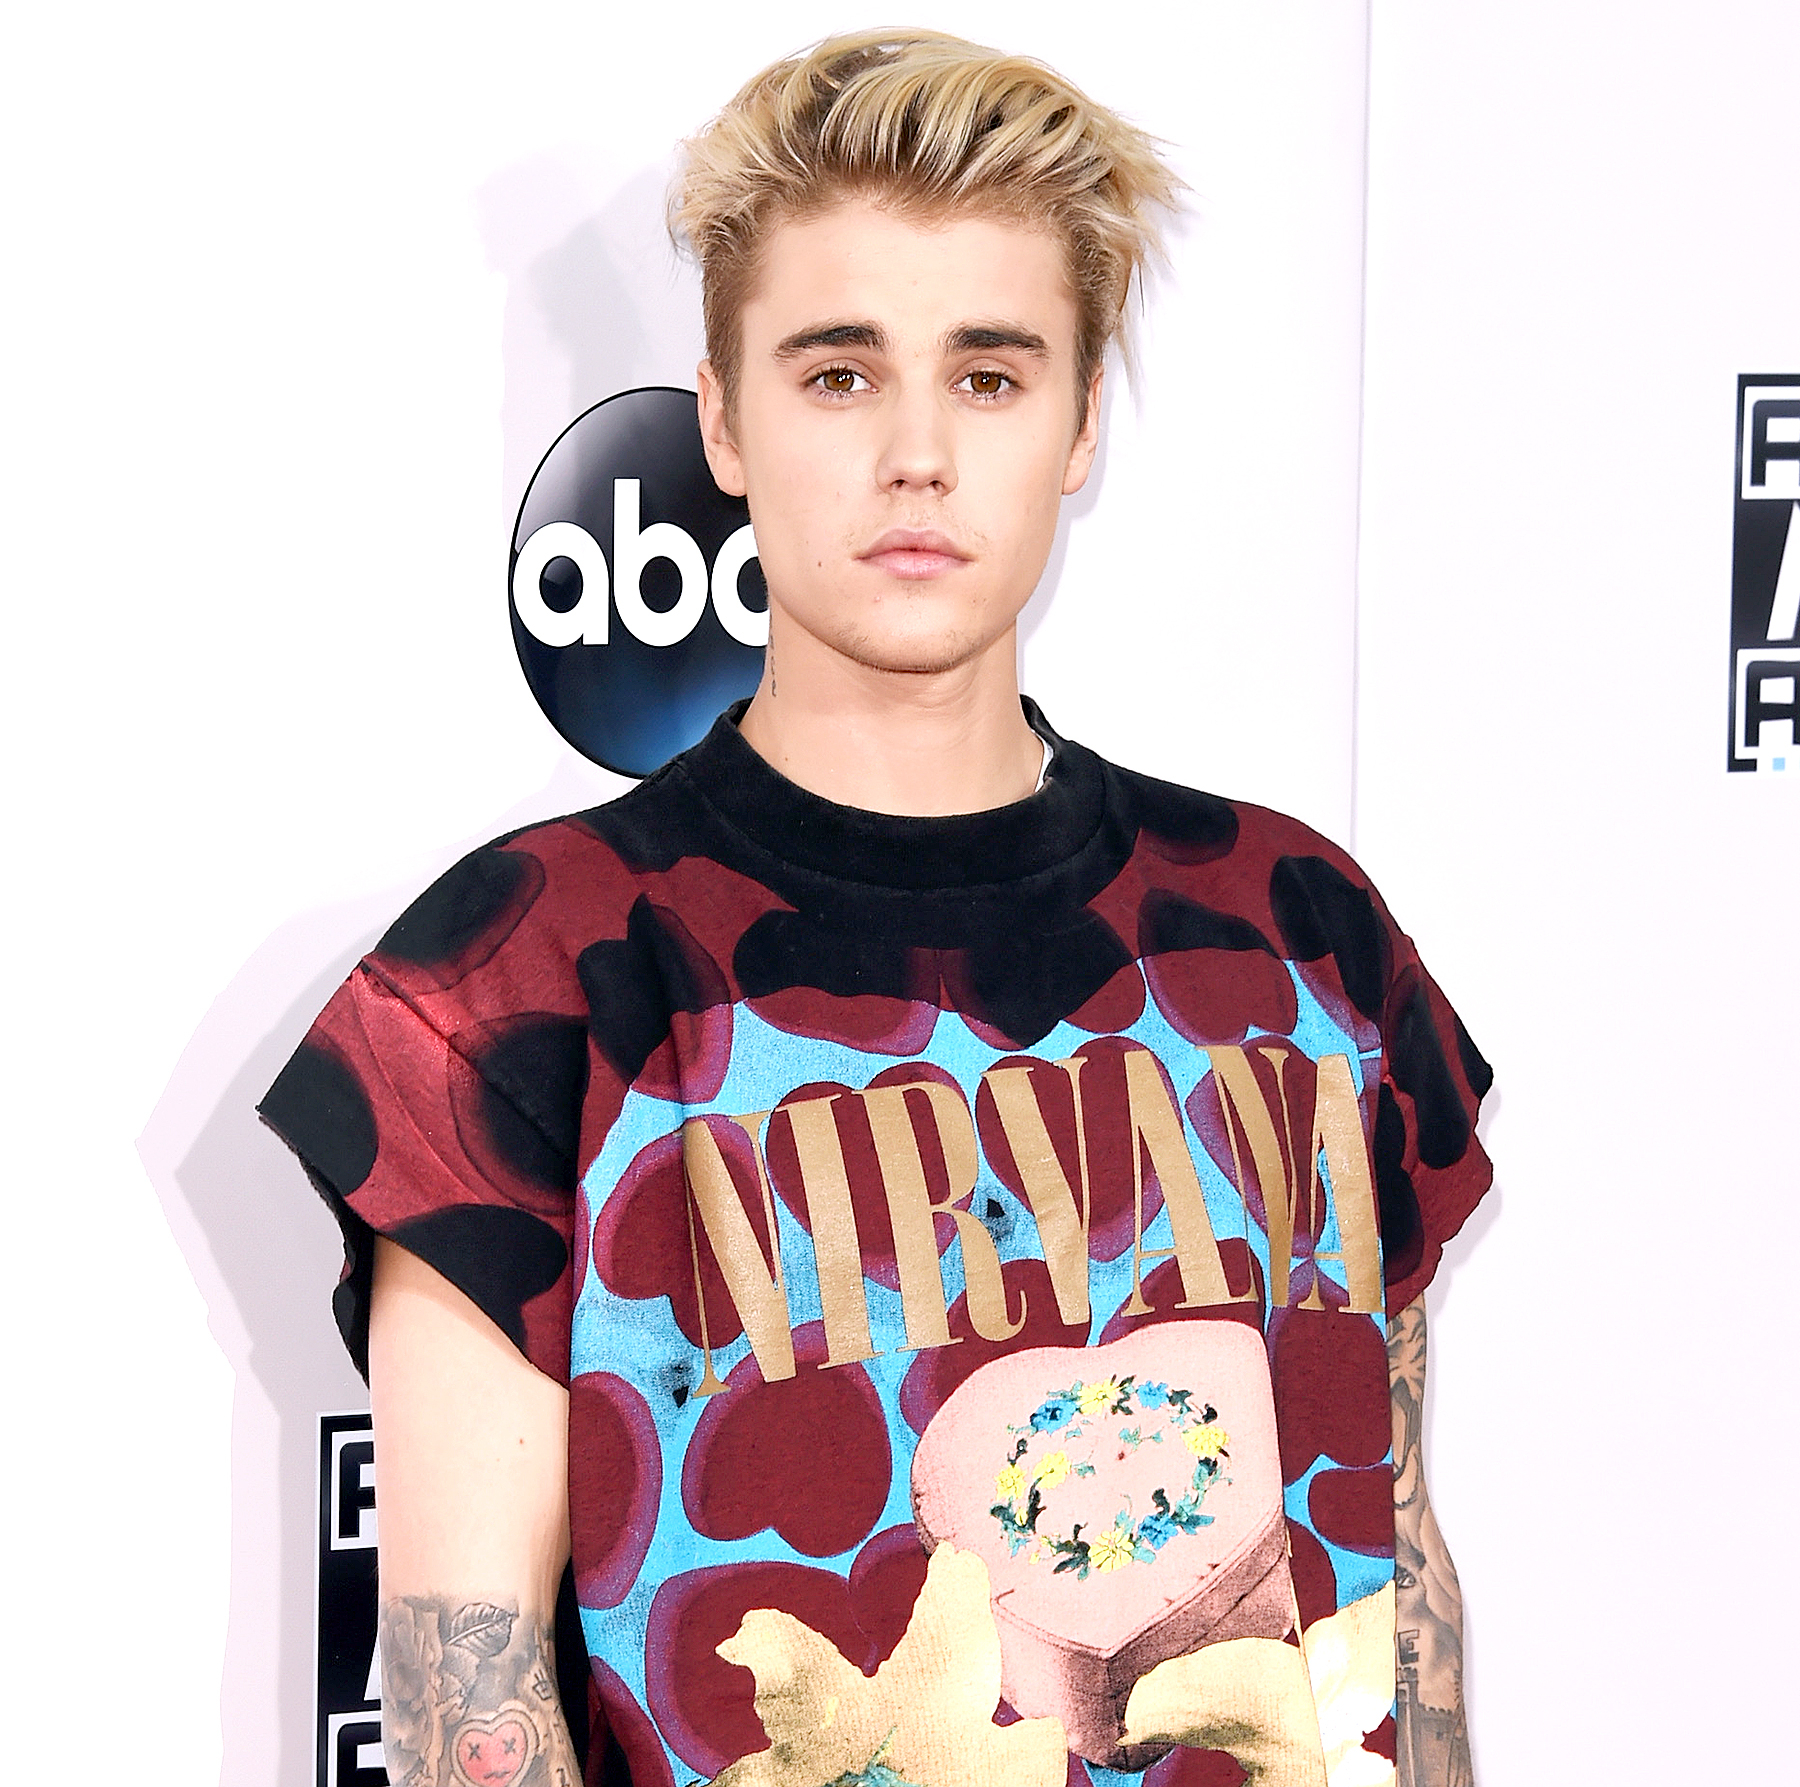 Justin Bieber attends the 2015 American Music Awards at Microsoft Theater on November 22, 2015 in Los Angeles, California.